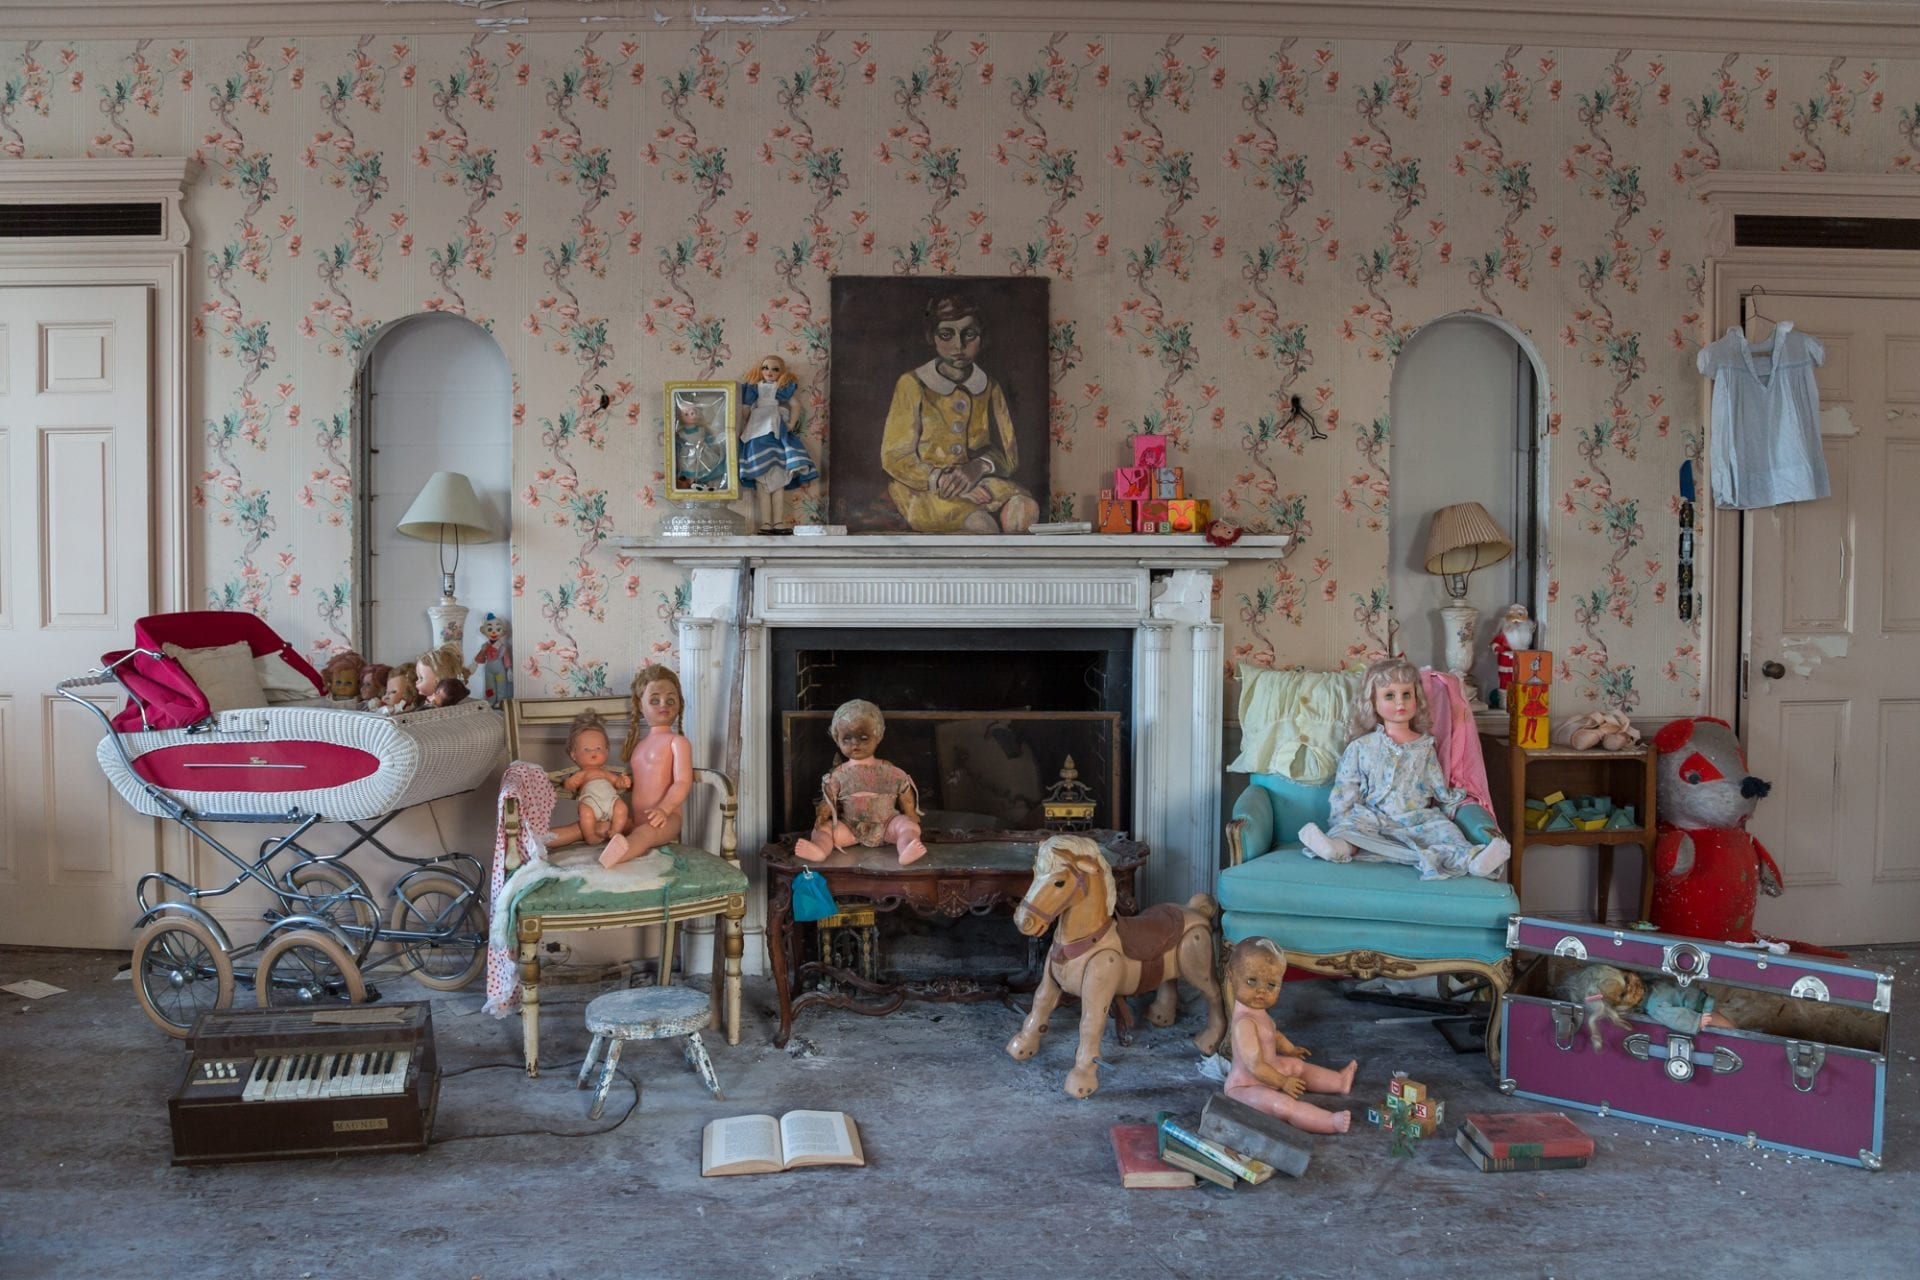 57-room-mansion-New-York-City-dolls-toys